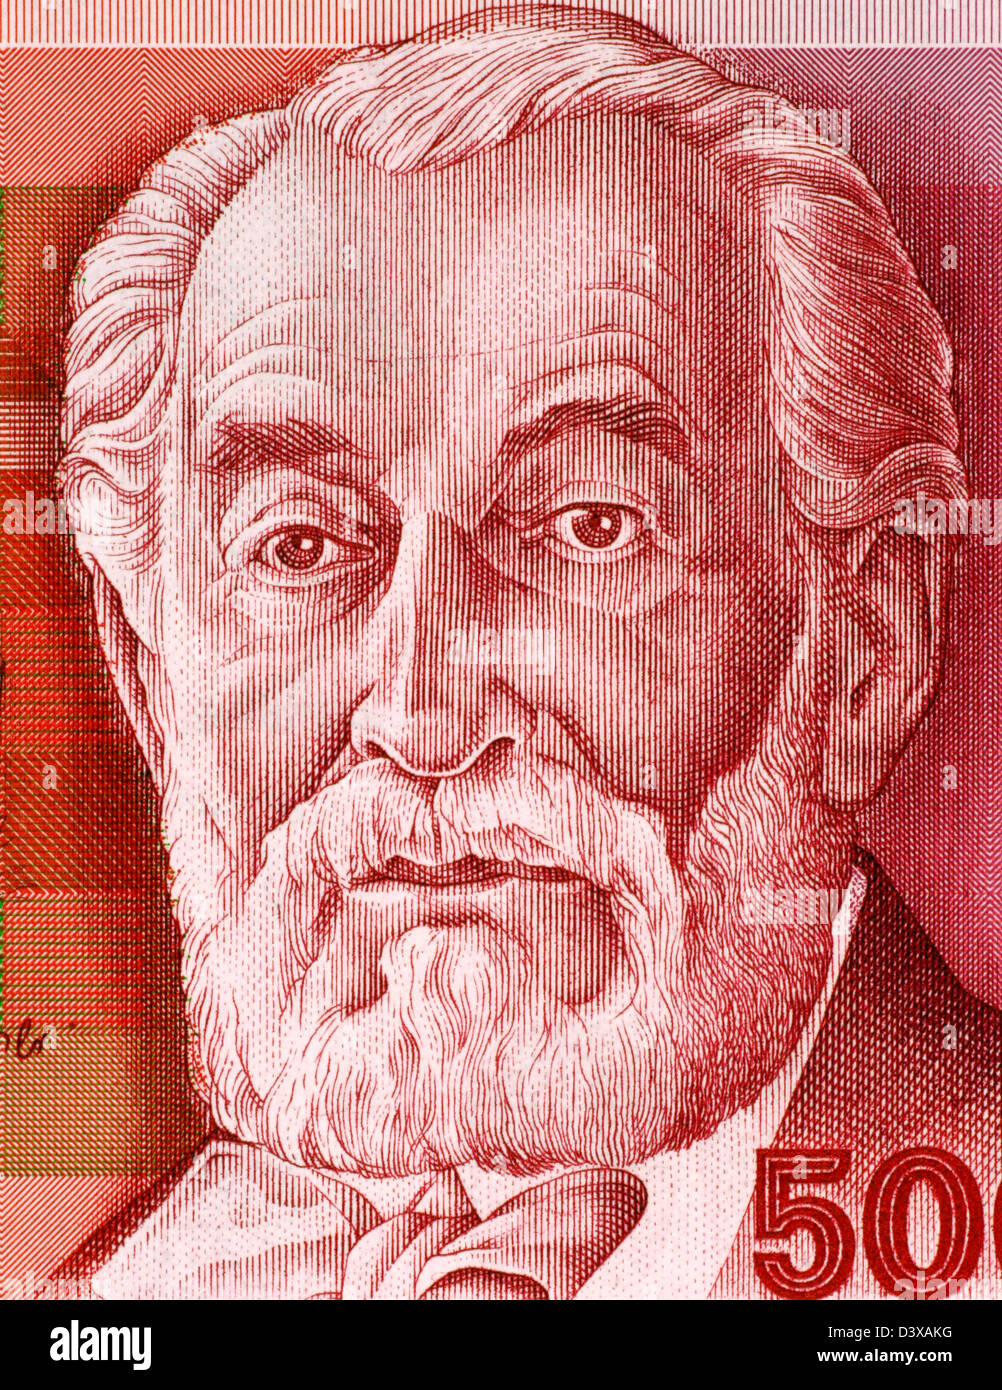 Edmond James de Rothschild (1845-1934) on 500 Sheqalim 1982 Banknote from Israel. French member of the Rothschild - Stock Image